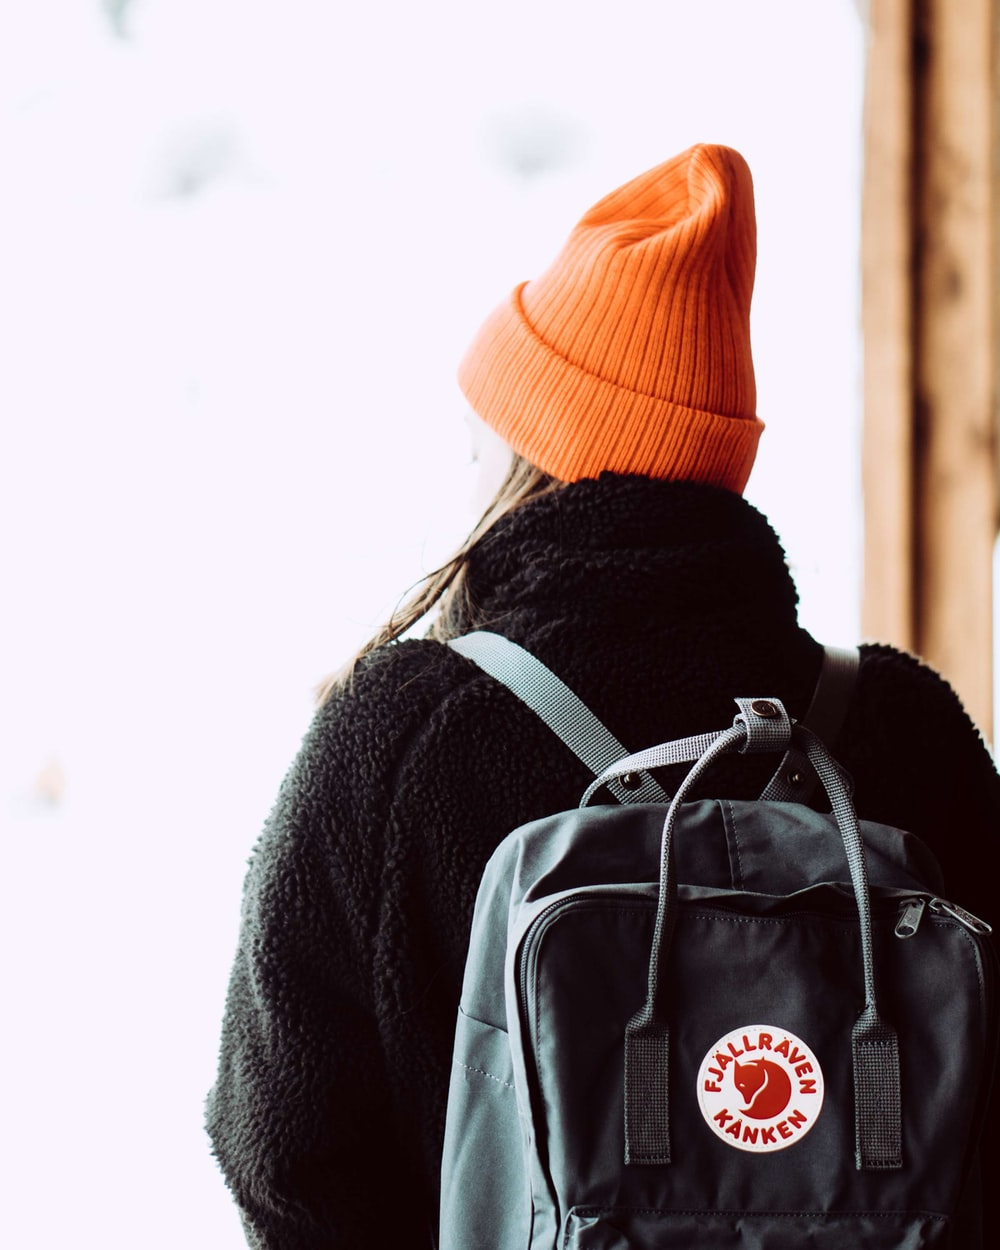 person in gray coat and orange knit cap